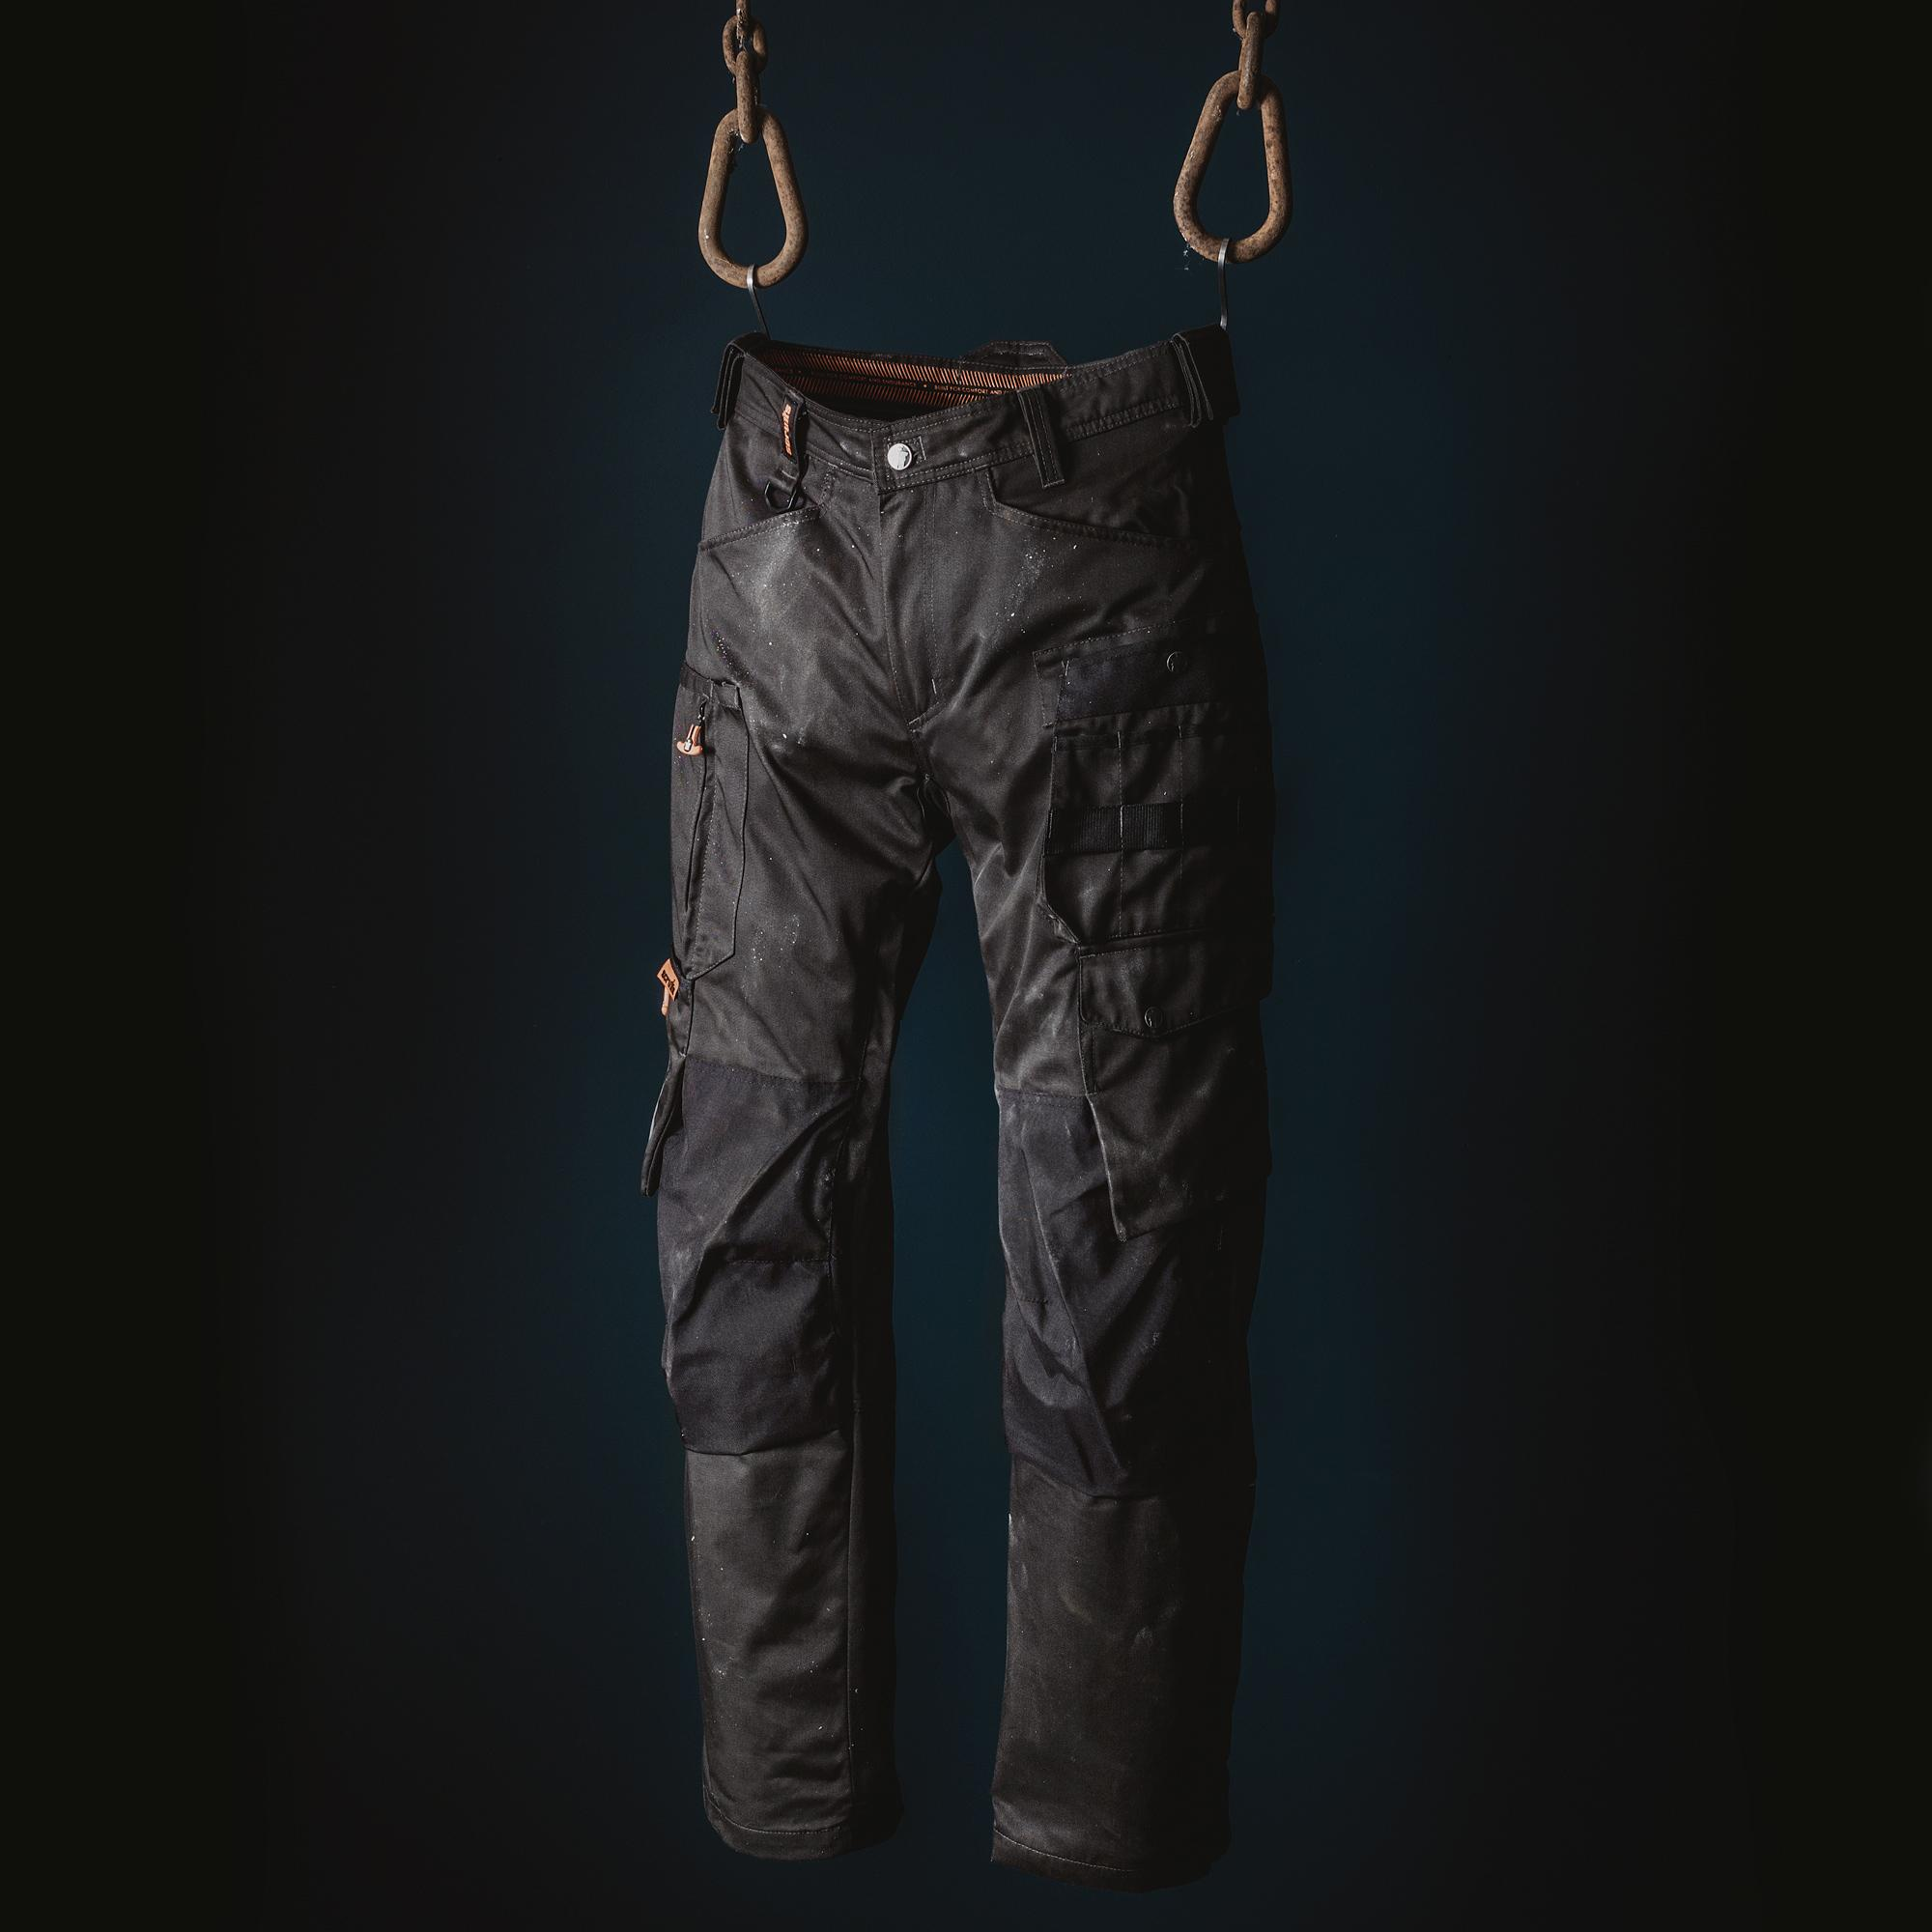 Scruffs 3D Pro Trousers for sale | Prolift Access